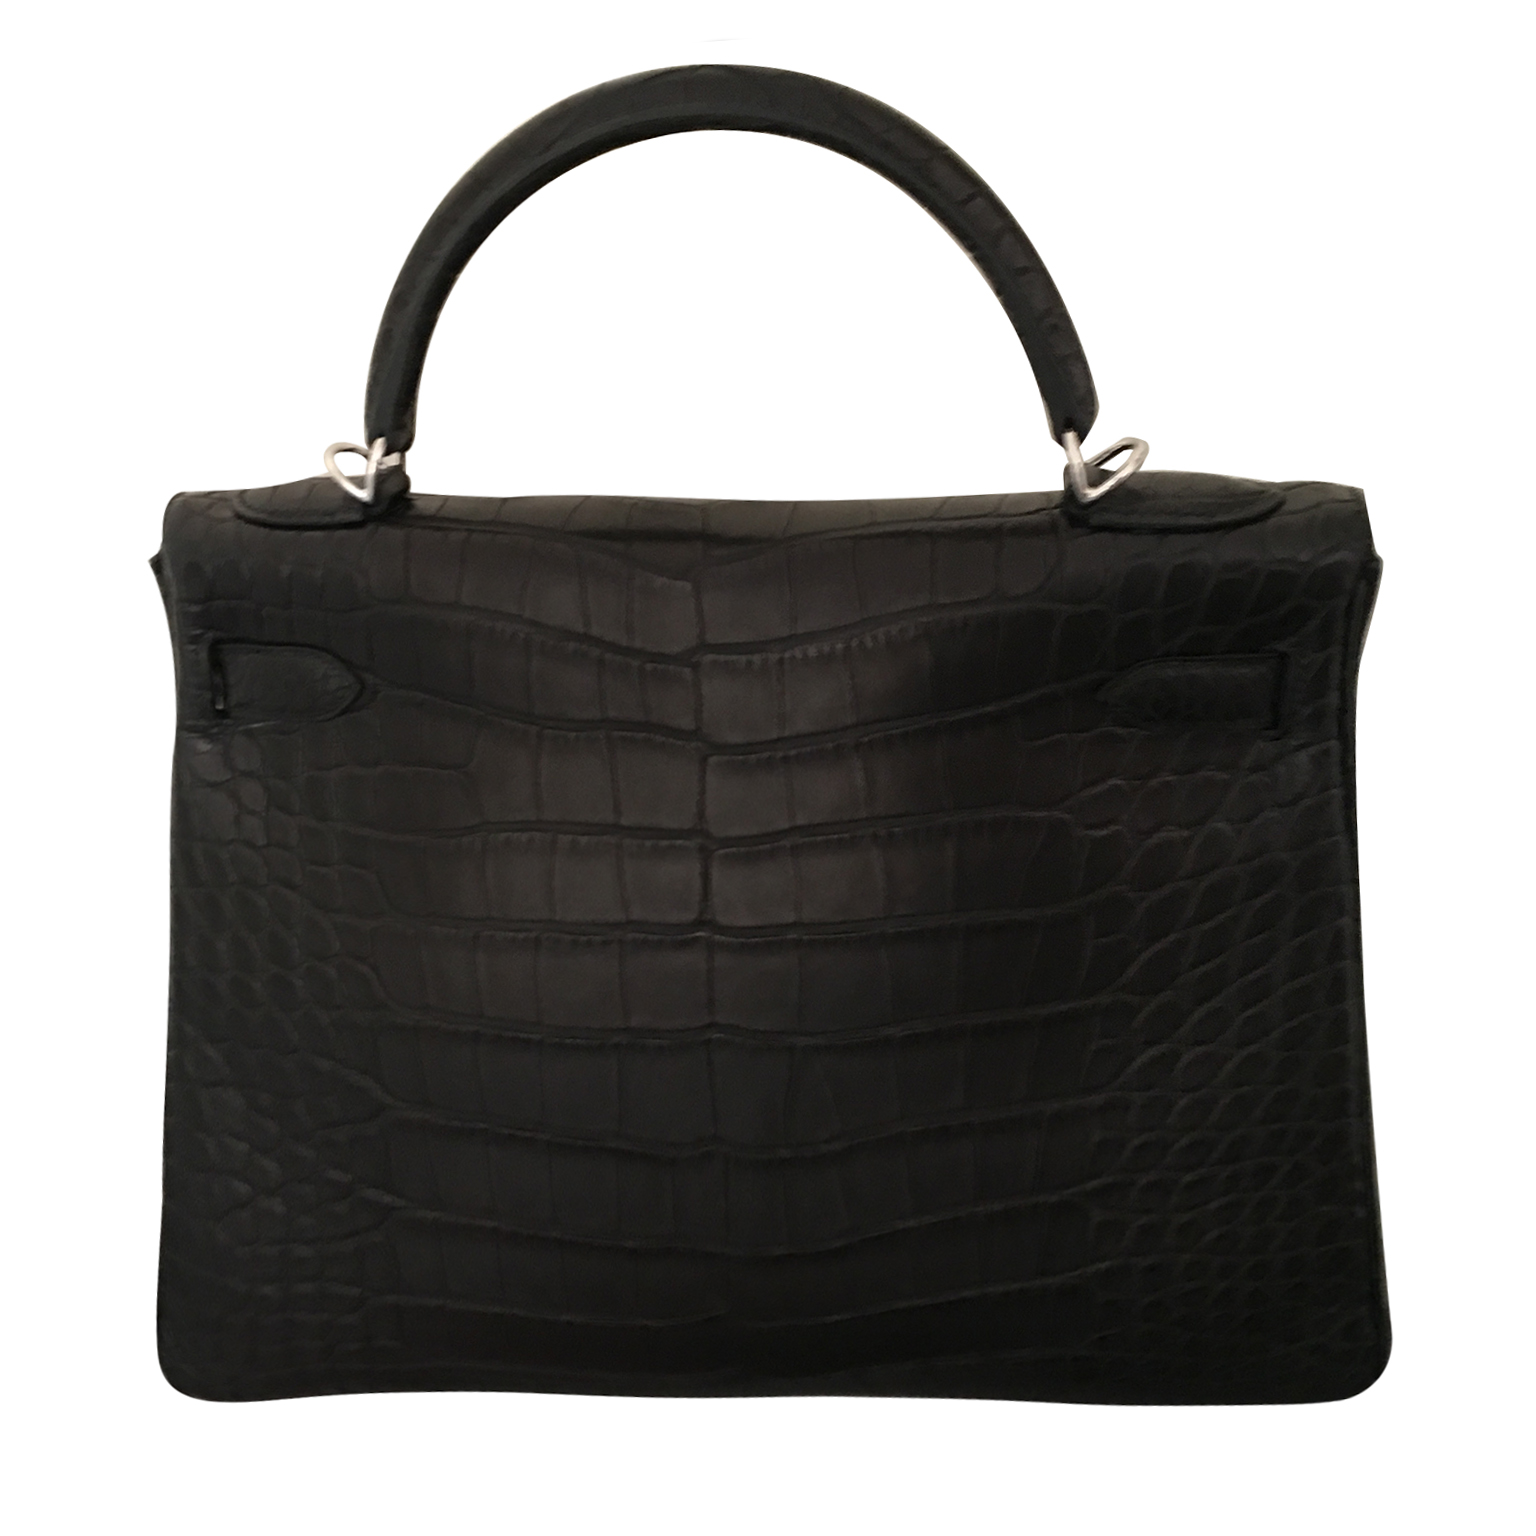 100% authentic Hermès Kelly 32 Black Matte Aligator PHW sold out everywhere